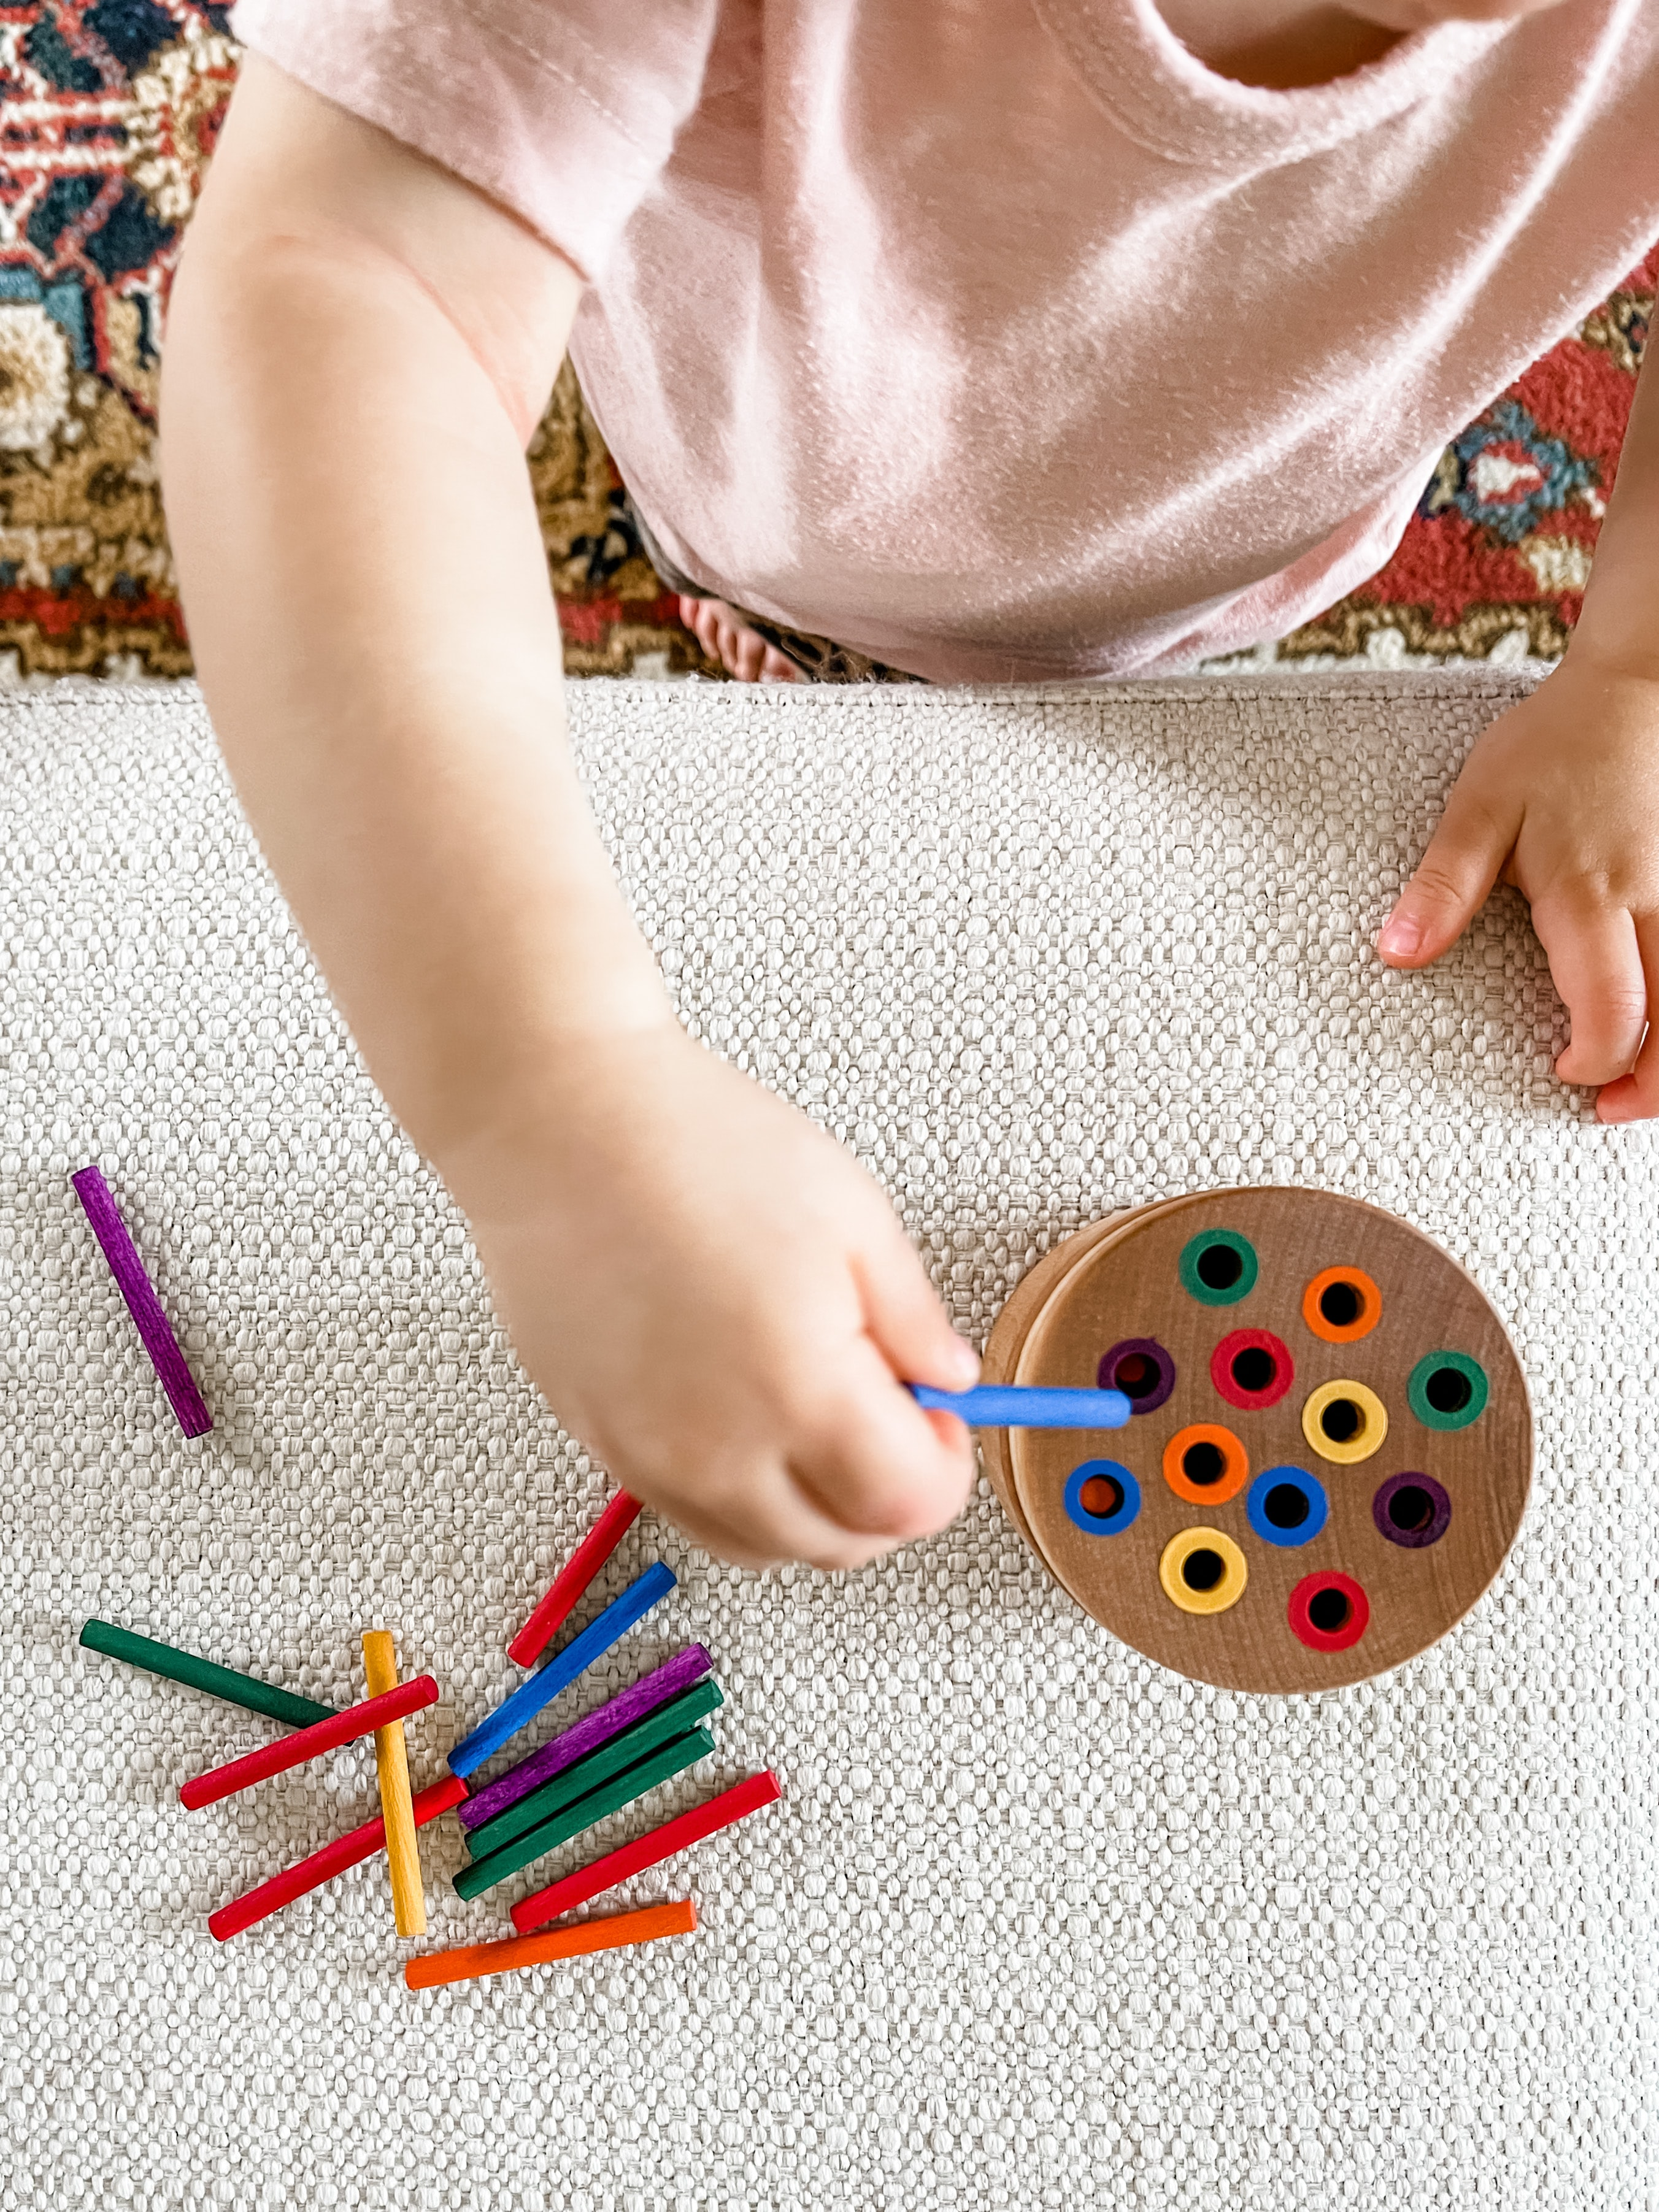 Toddler playing with a toy to match colored sticks into a colored hole.